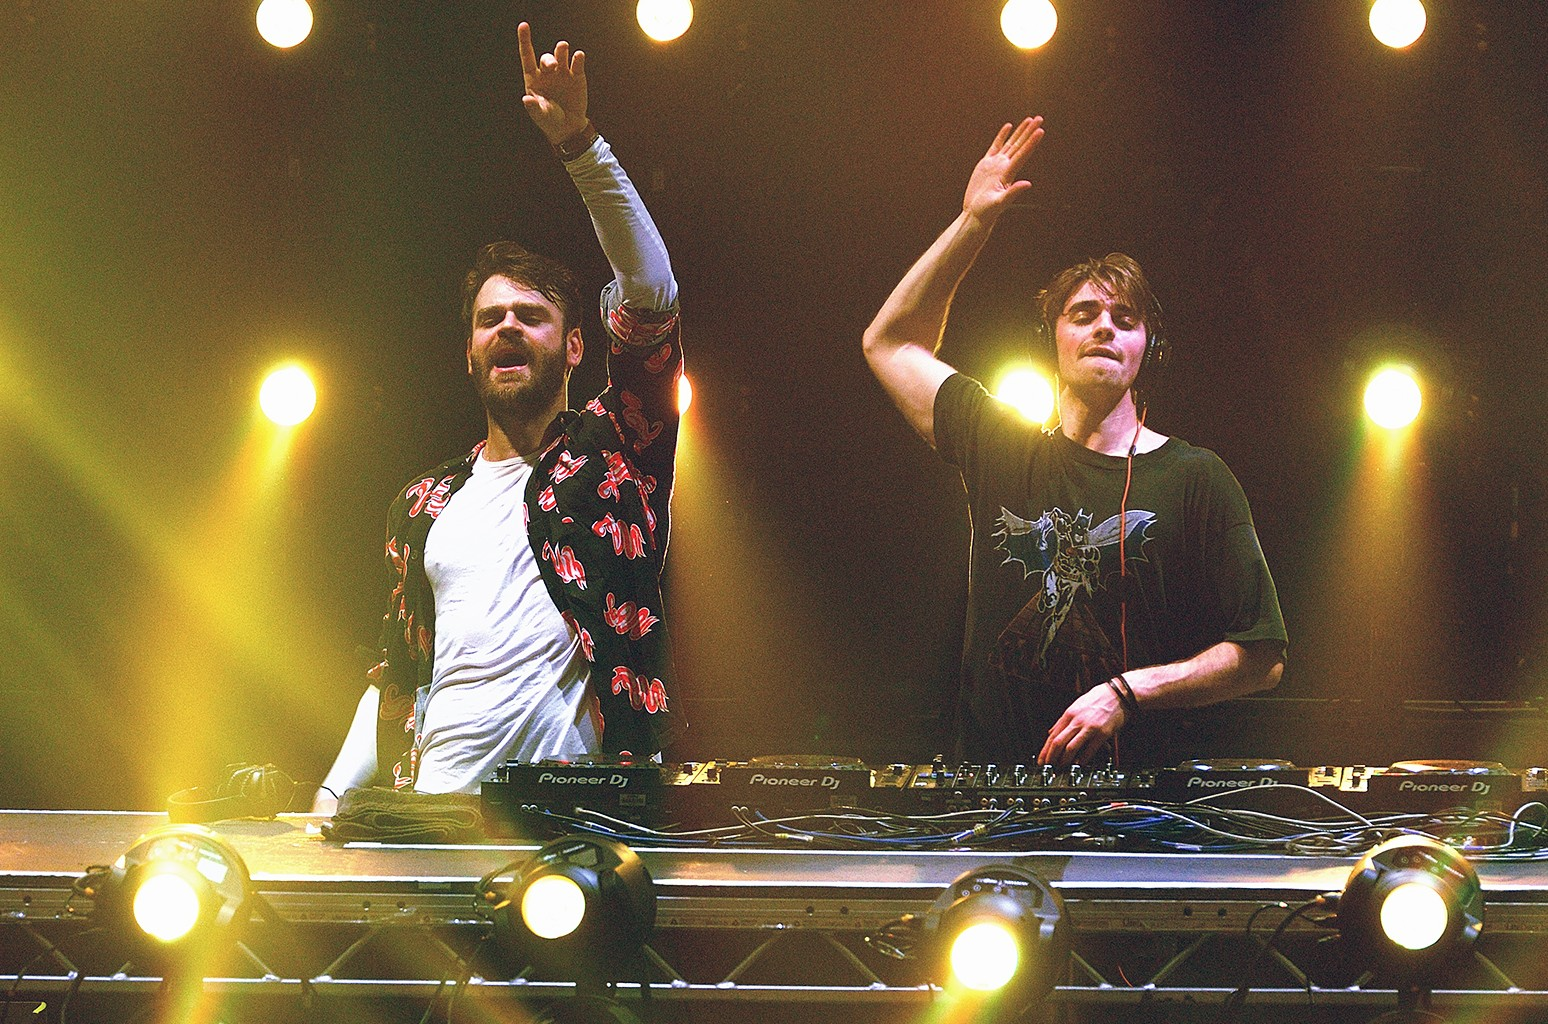 The Chainsmokers perform at The Roundhouse on Feb. 24, 2017 in London.